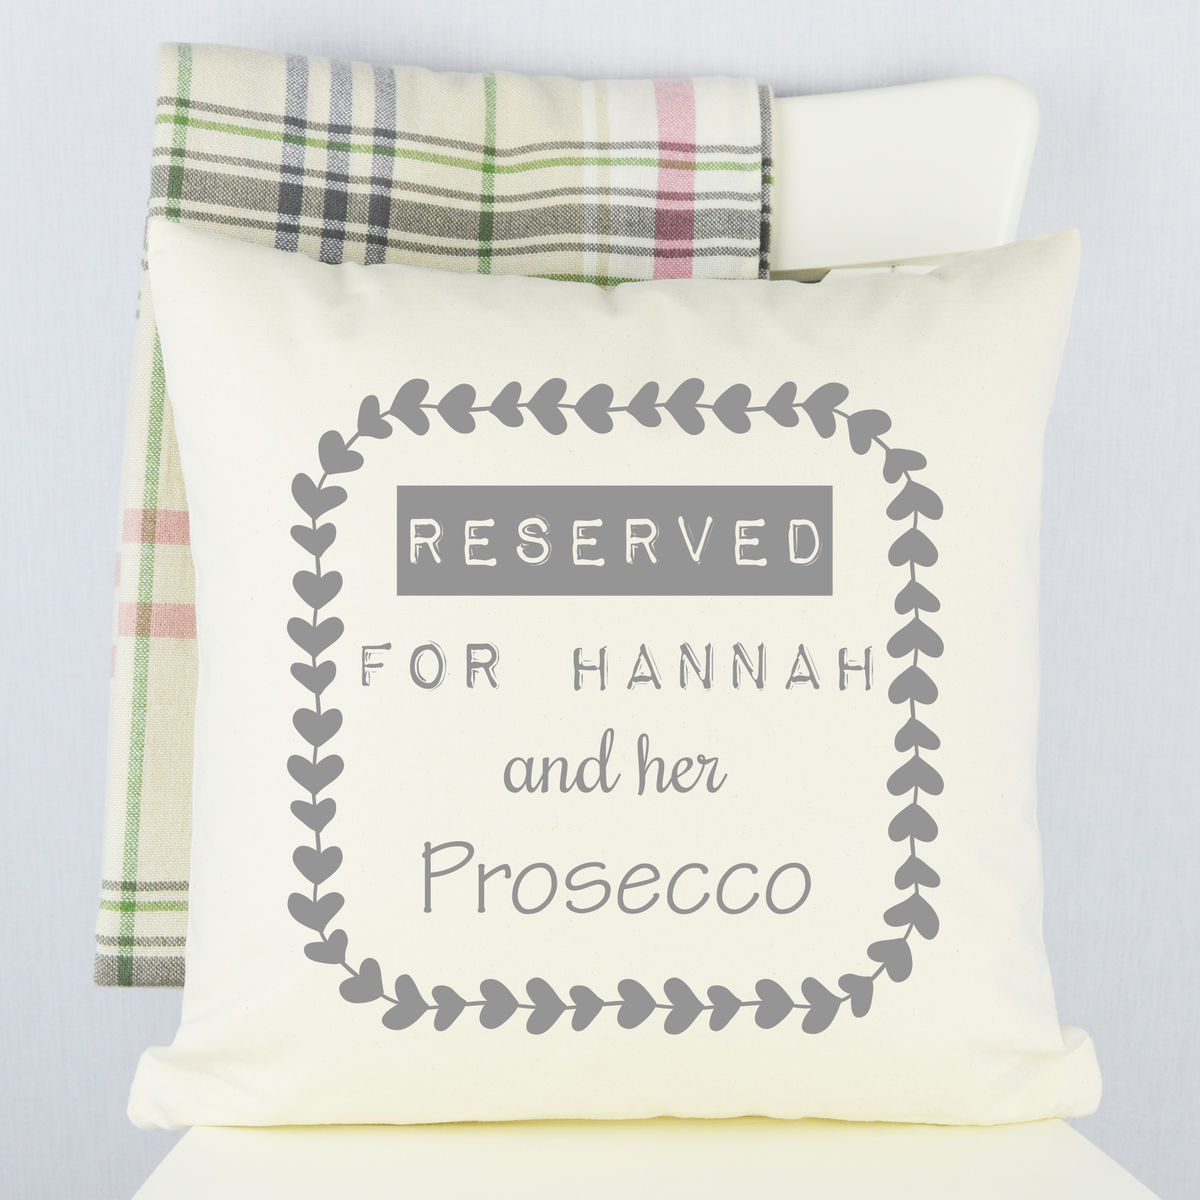 Personalised Prosecco Cushion - product image